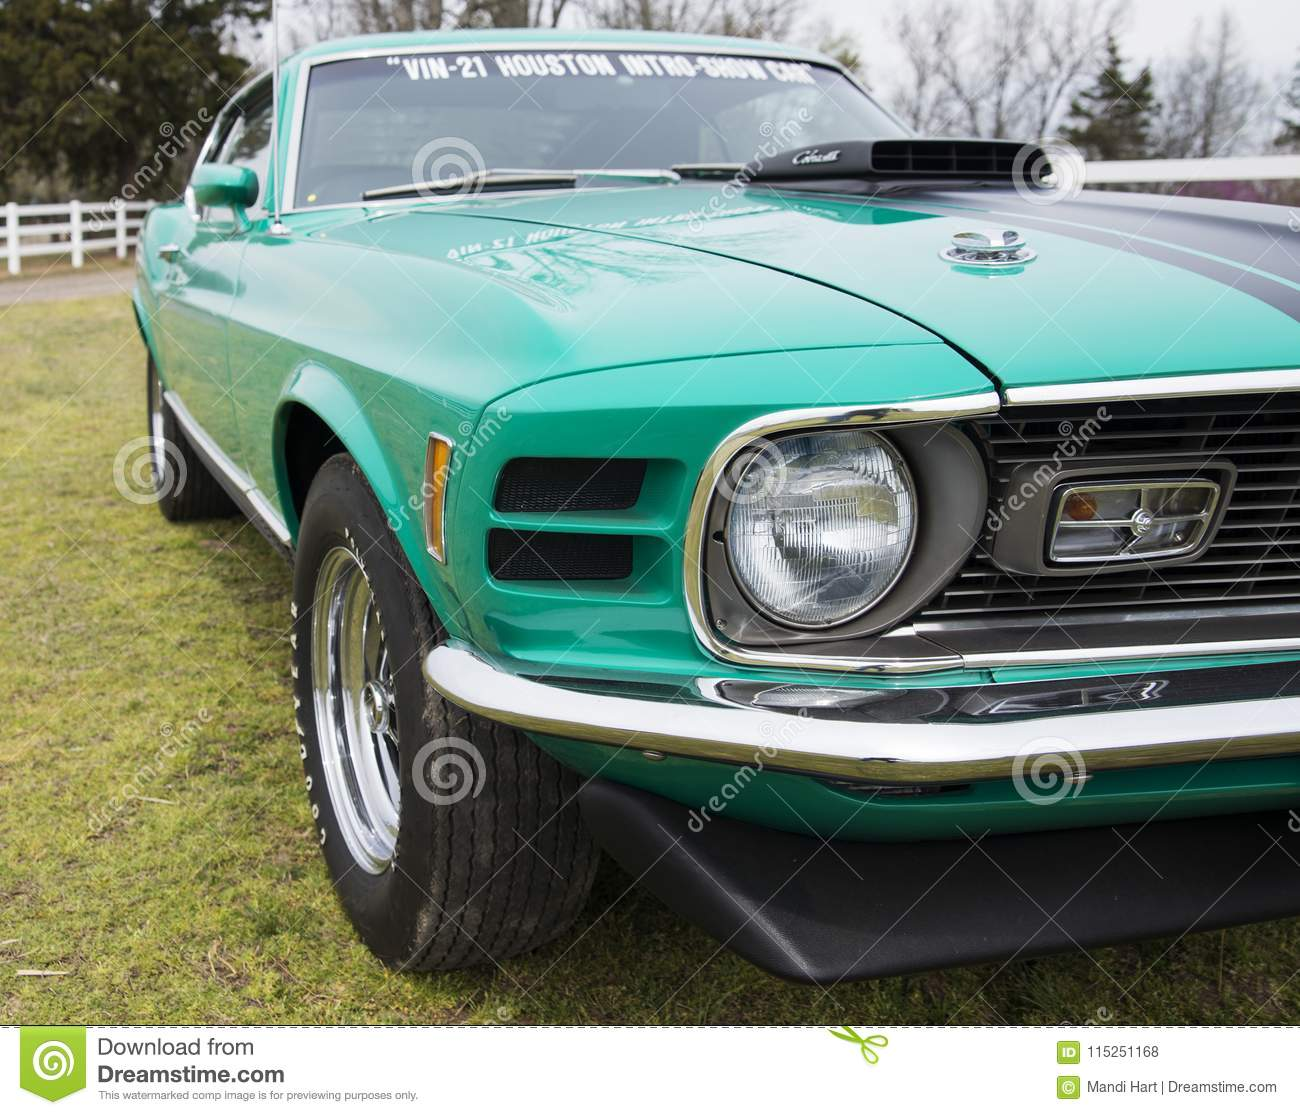 1970 Mustang Mach 1 Editorial Stock Photo Image Of Door 115251168 Ford